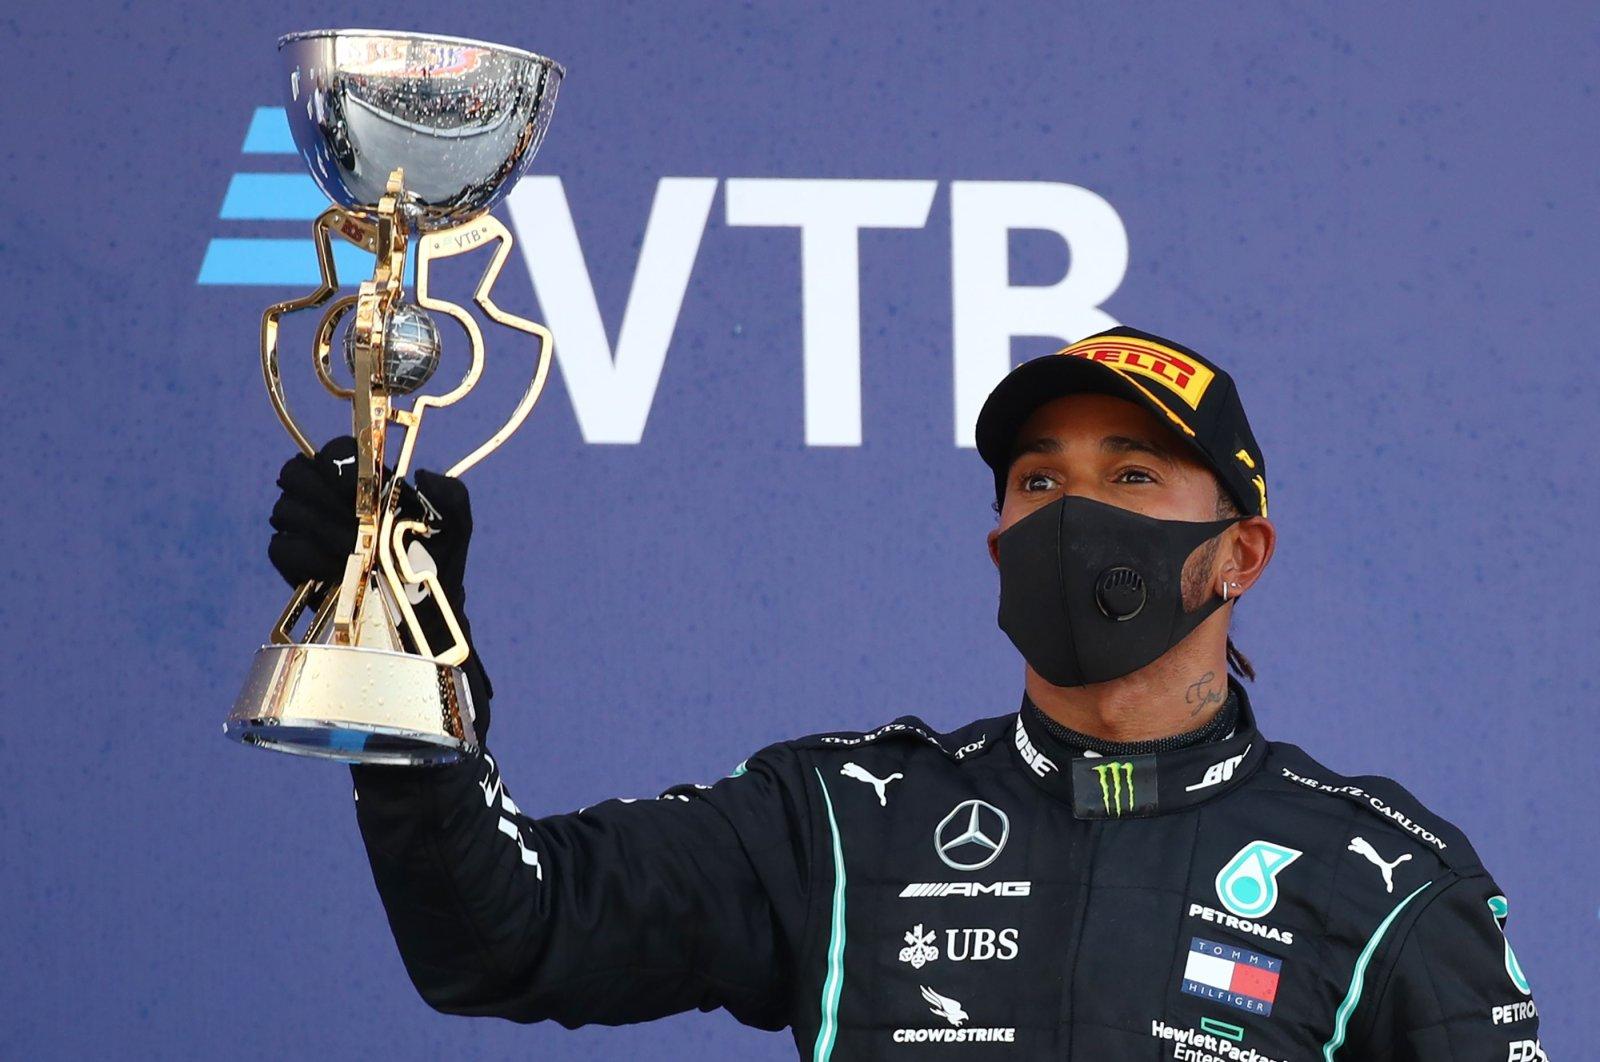 Mercedes driver Lewis Hamilton holds his trophy on the podium after finishing third in the Formula One Russian Grand Prix, in Sochi, Russia, Sept. 27, 2020. (AFP Photo)